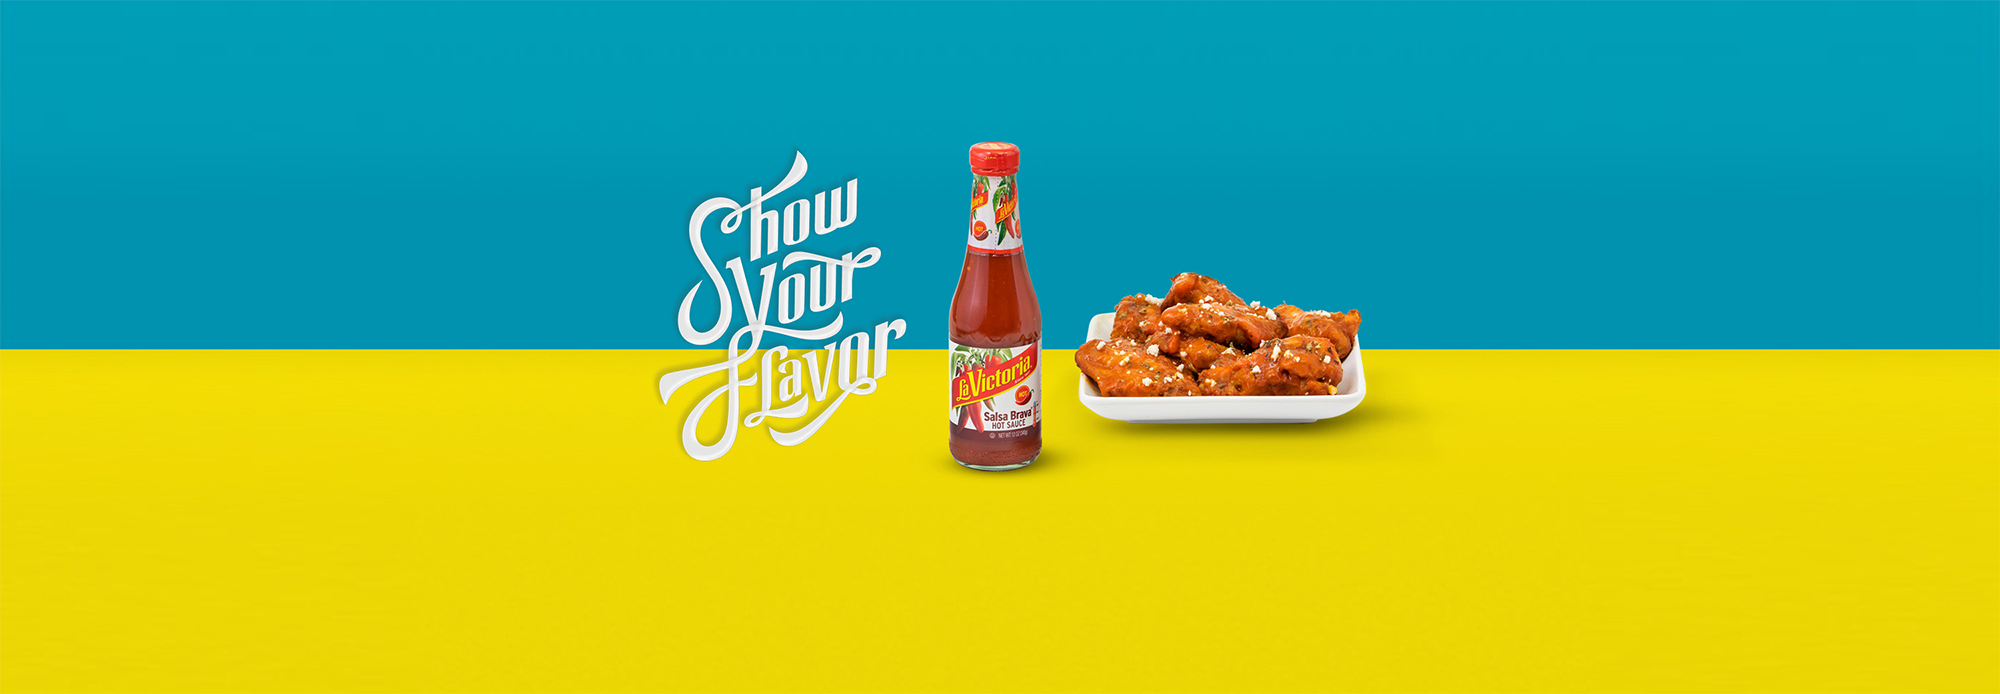 LaVictoria-Show-Your-Flavor-Buffalo-Wings-2000x694